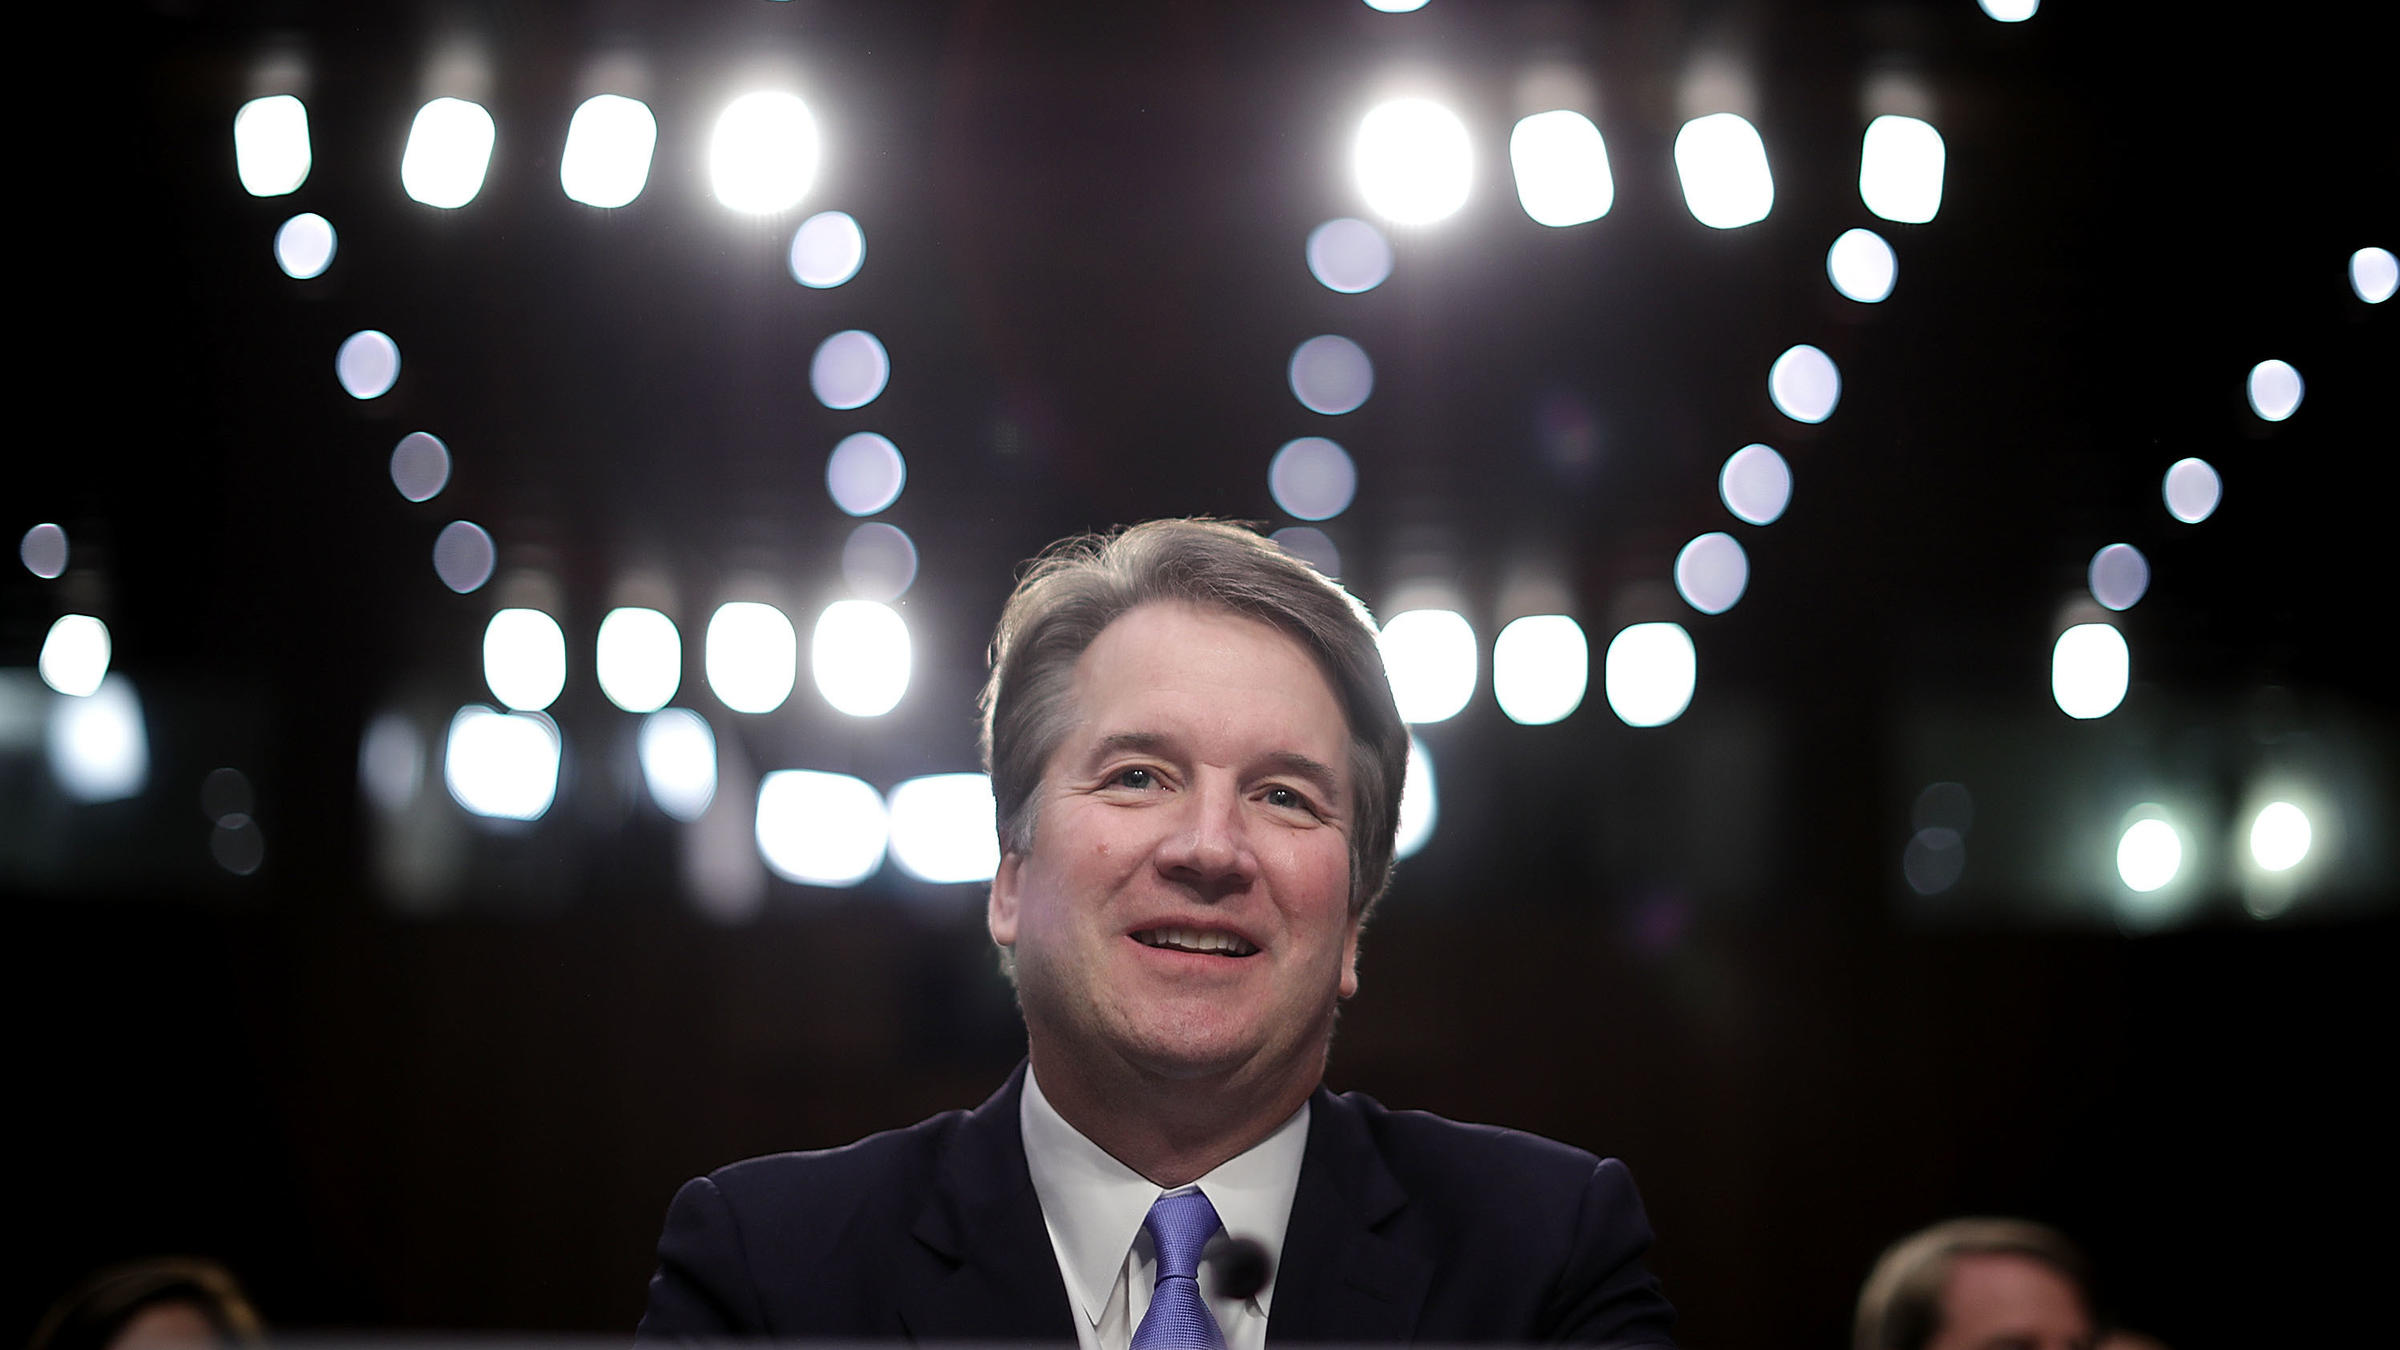 Supreme Court nominee Judge Brett Kavanaugh prepares to testify before the Senate Judiciary Committee Thursday on the third day of his Supreme Court confirmation hearing on Capitol Hill